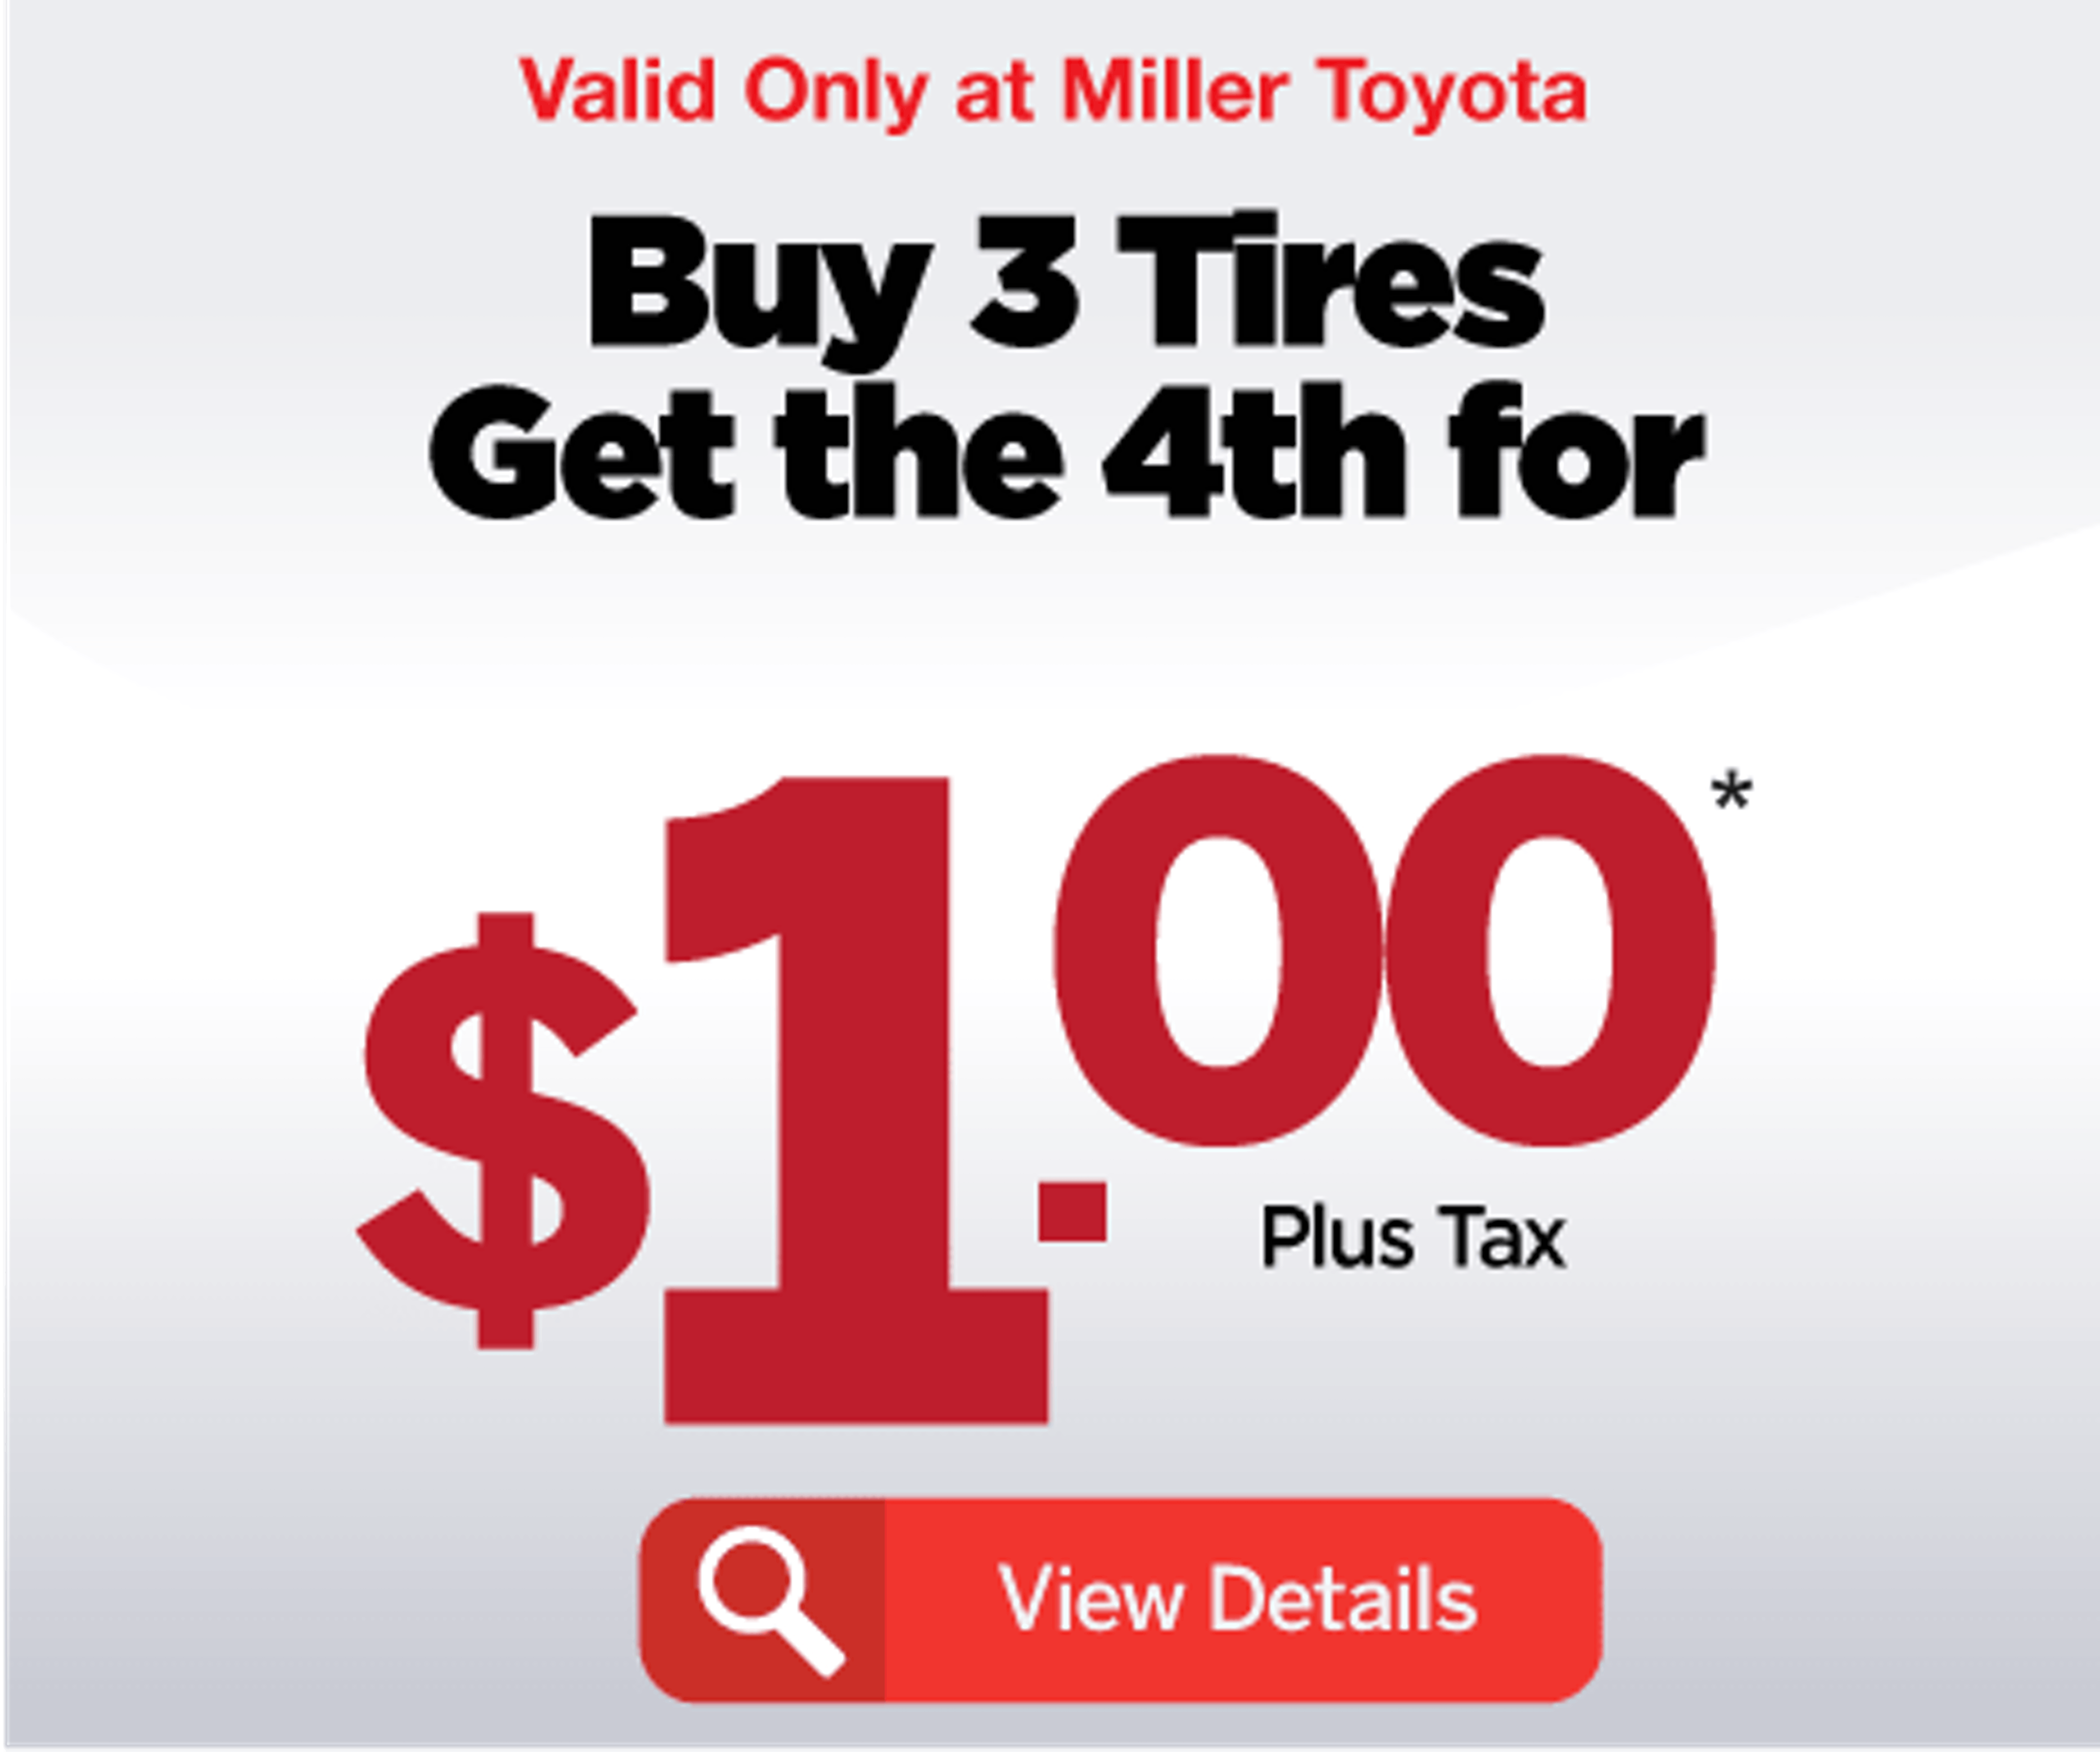 Special 4th Tire only $1